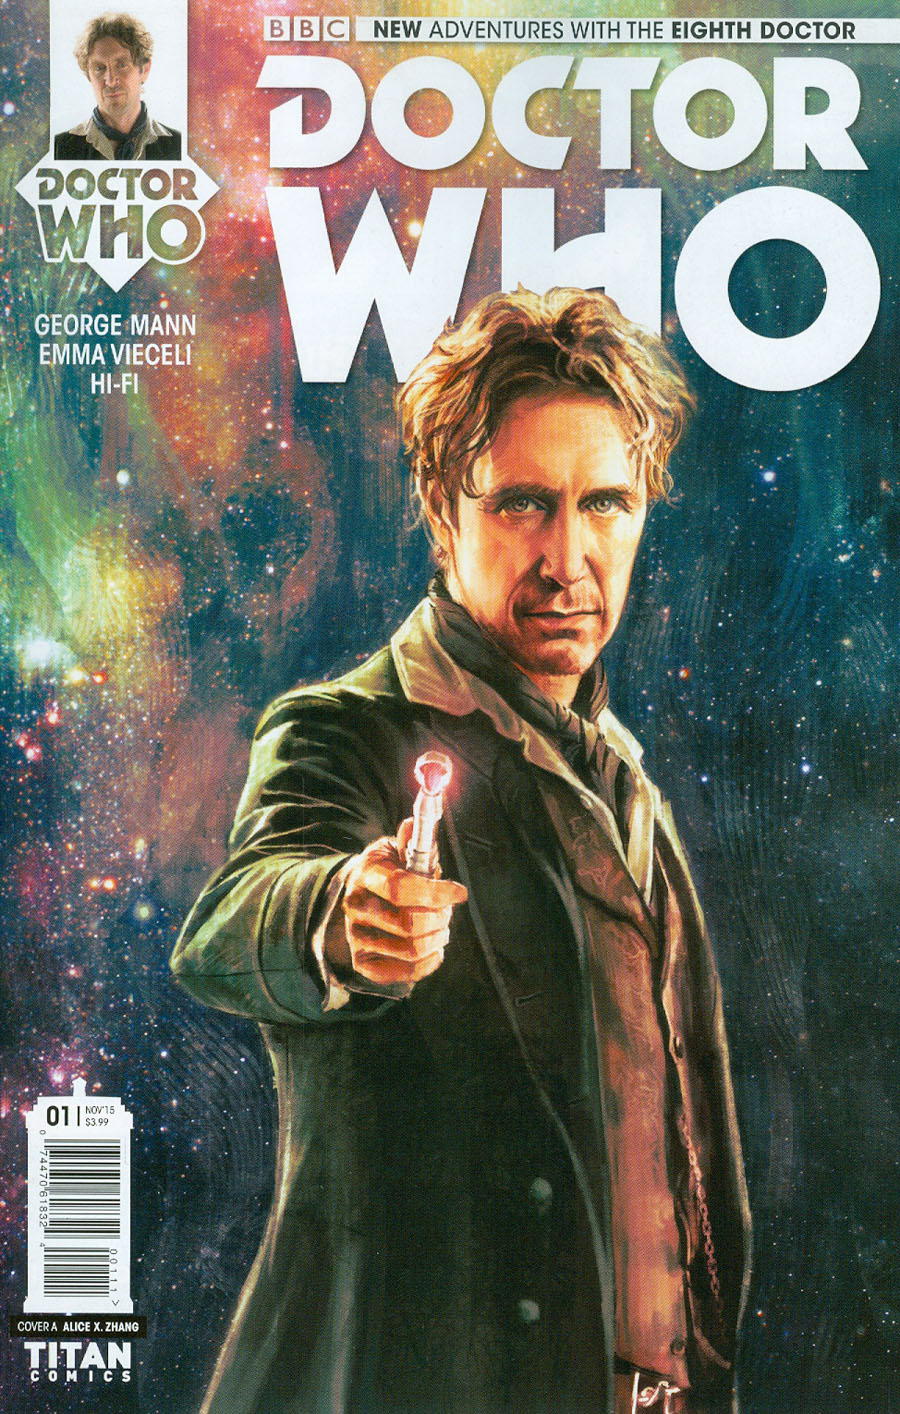 Doctor Who 8th Doctor #1 Cover A Regular Alice X Zhang Cover